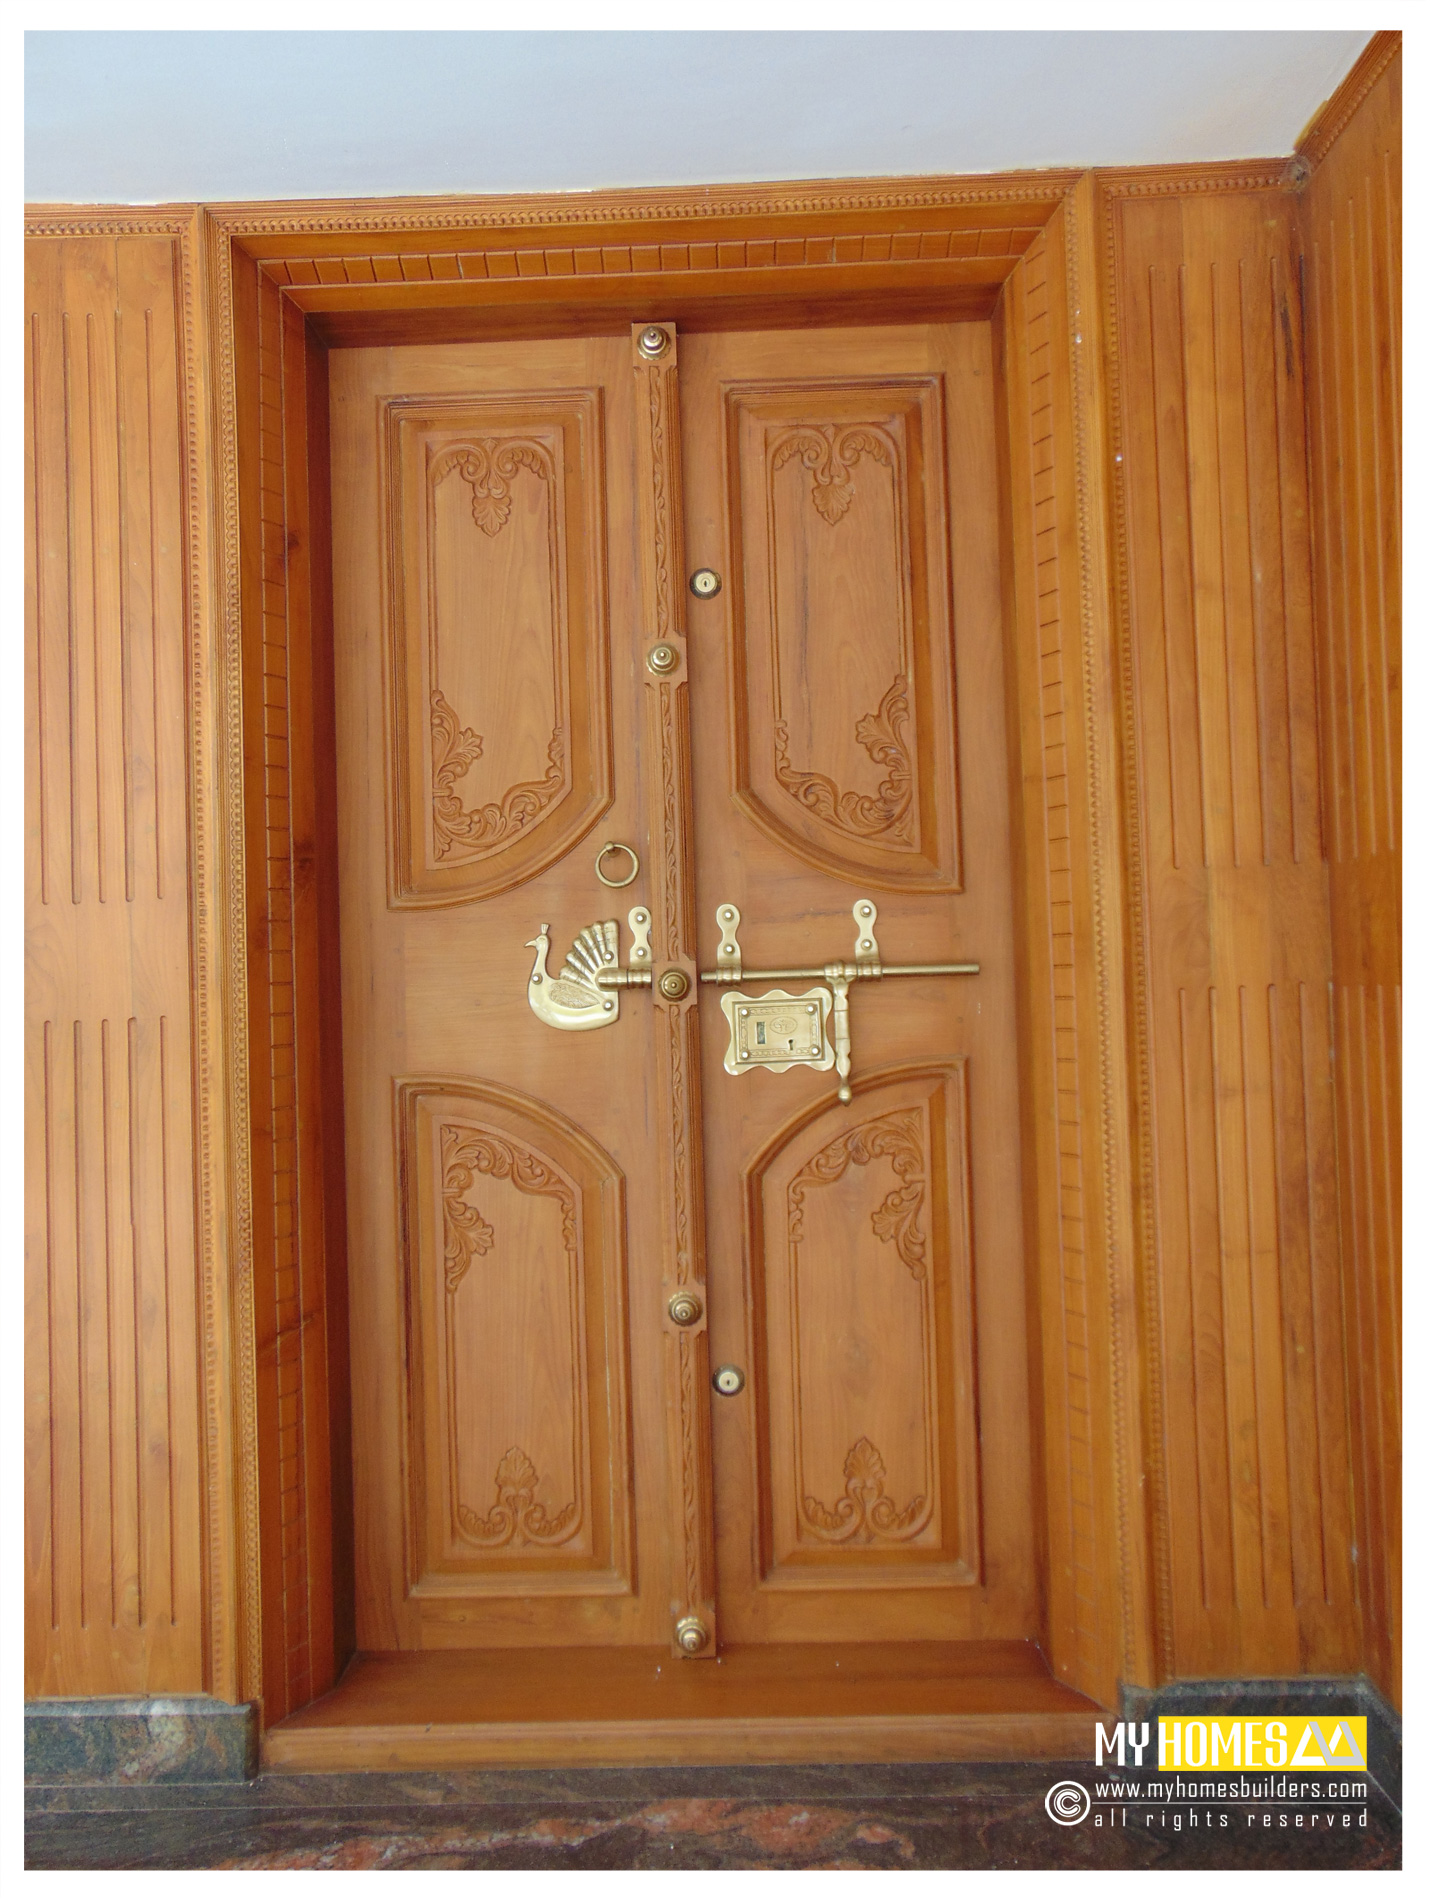 New idea for homes main door designs in kerala india for Home double door